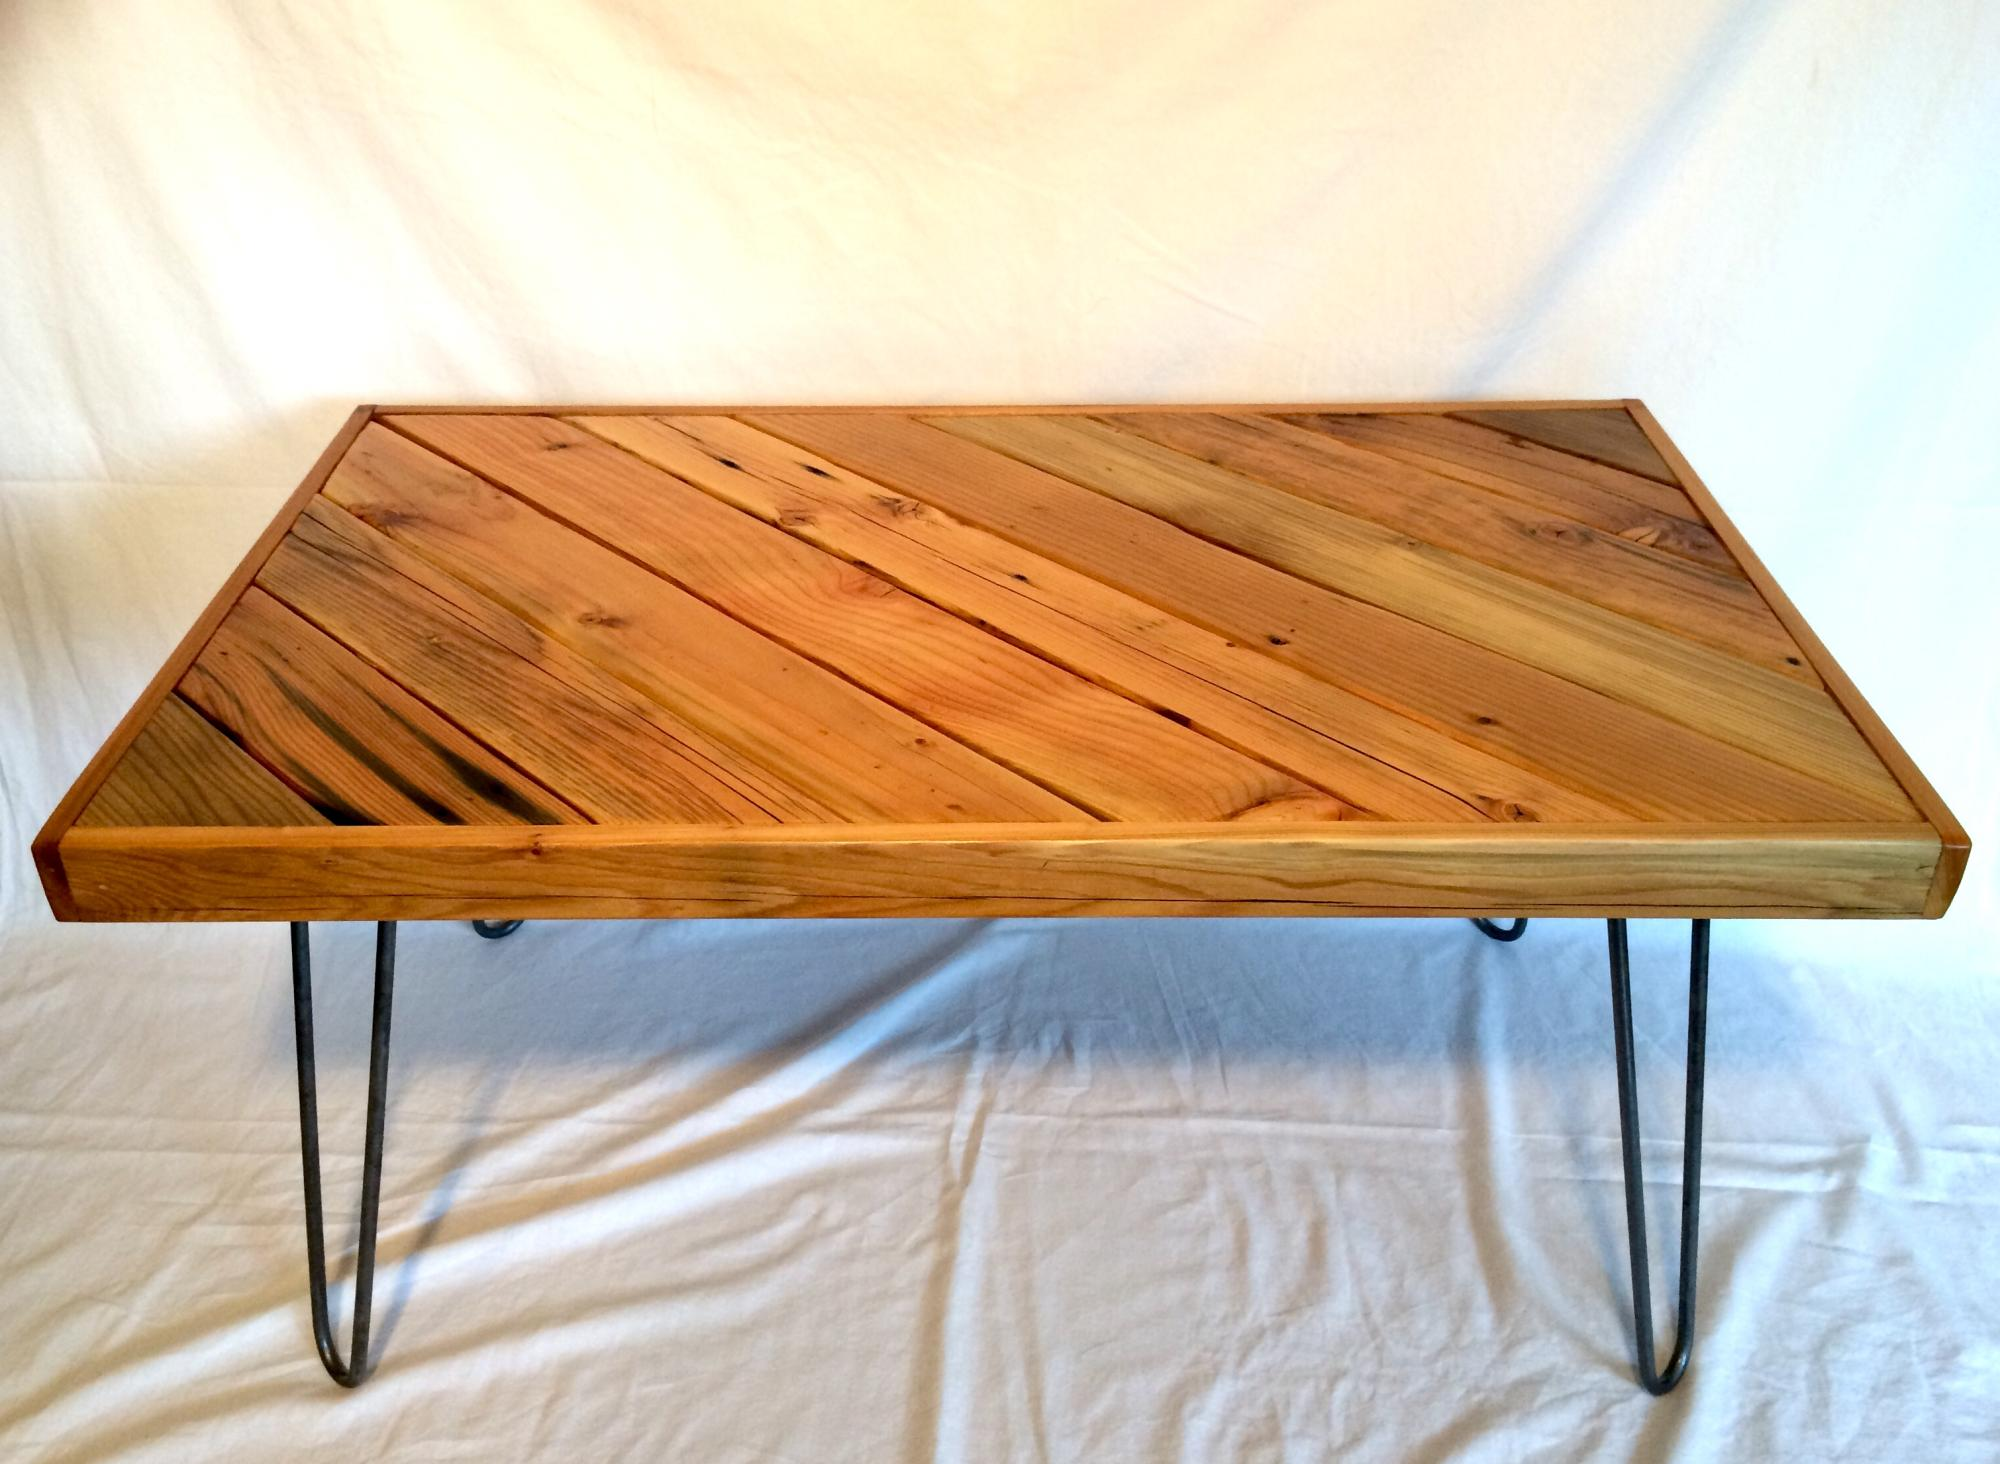 Drift lumber mixed wood diagonal coffee table  w/steel hairpin legs.  38Lx24Wx19H  $275